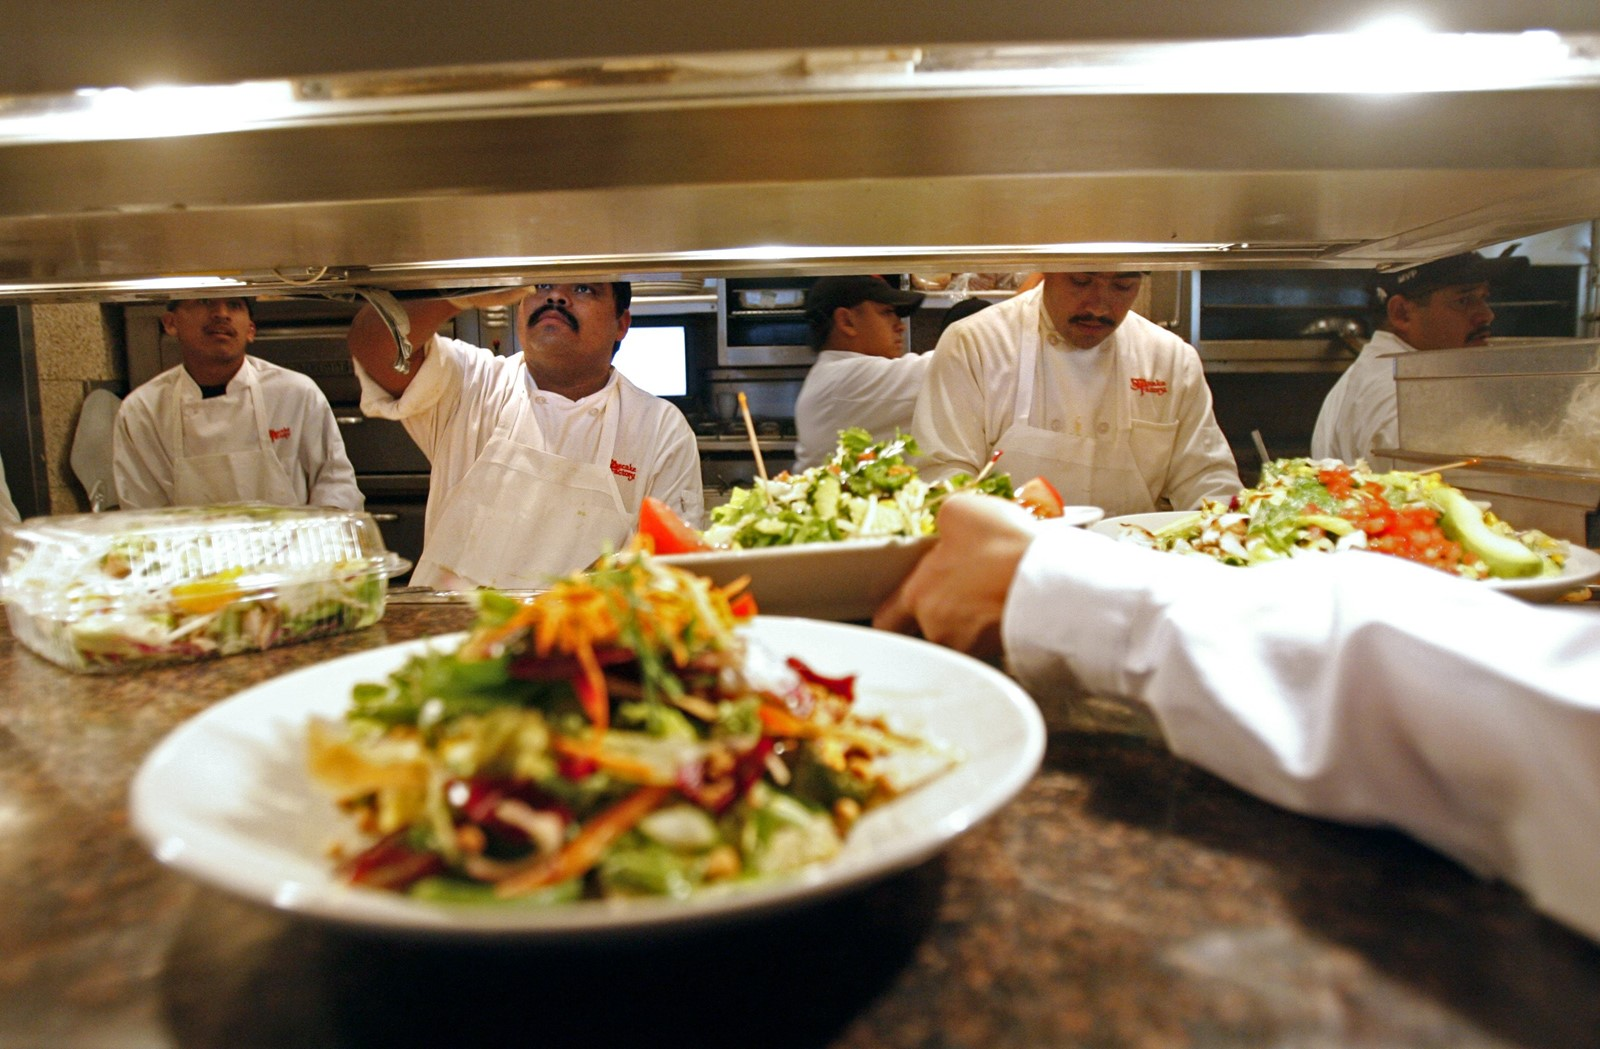 Print At Cheesecake Factory, wages cause indigestion Eateries ...